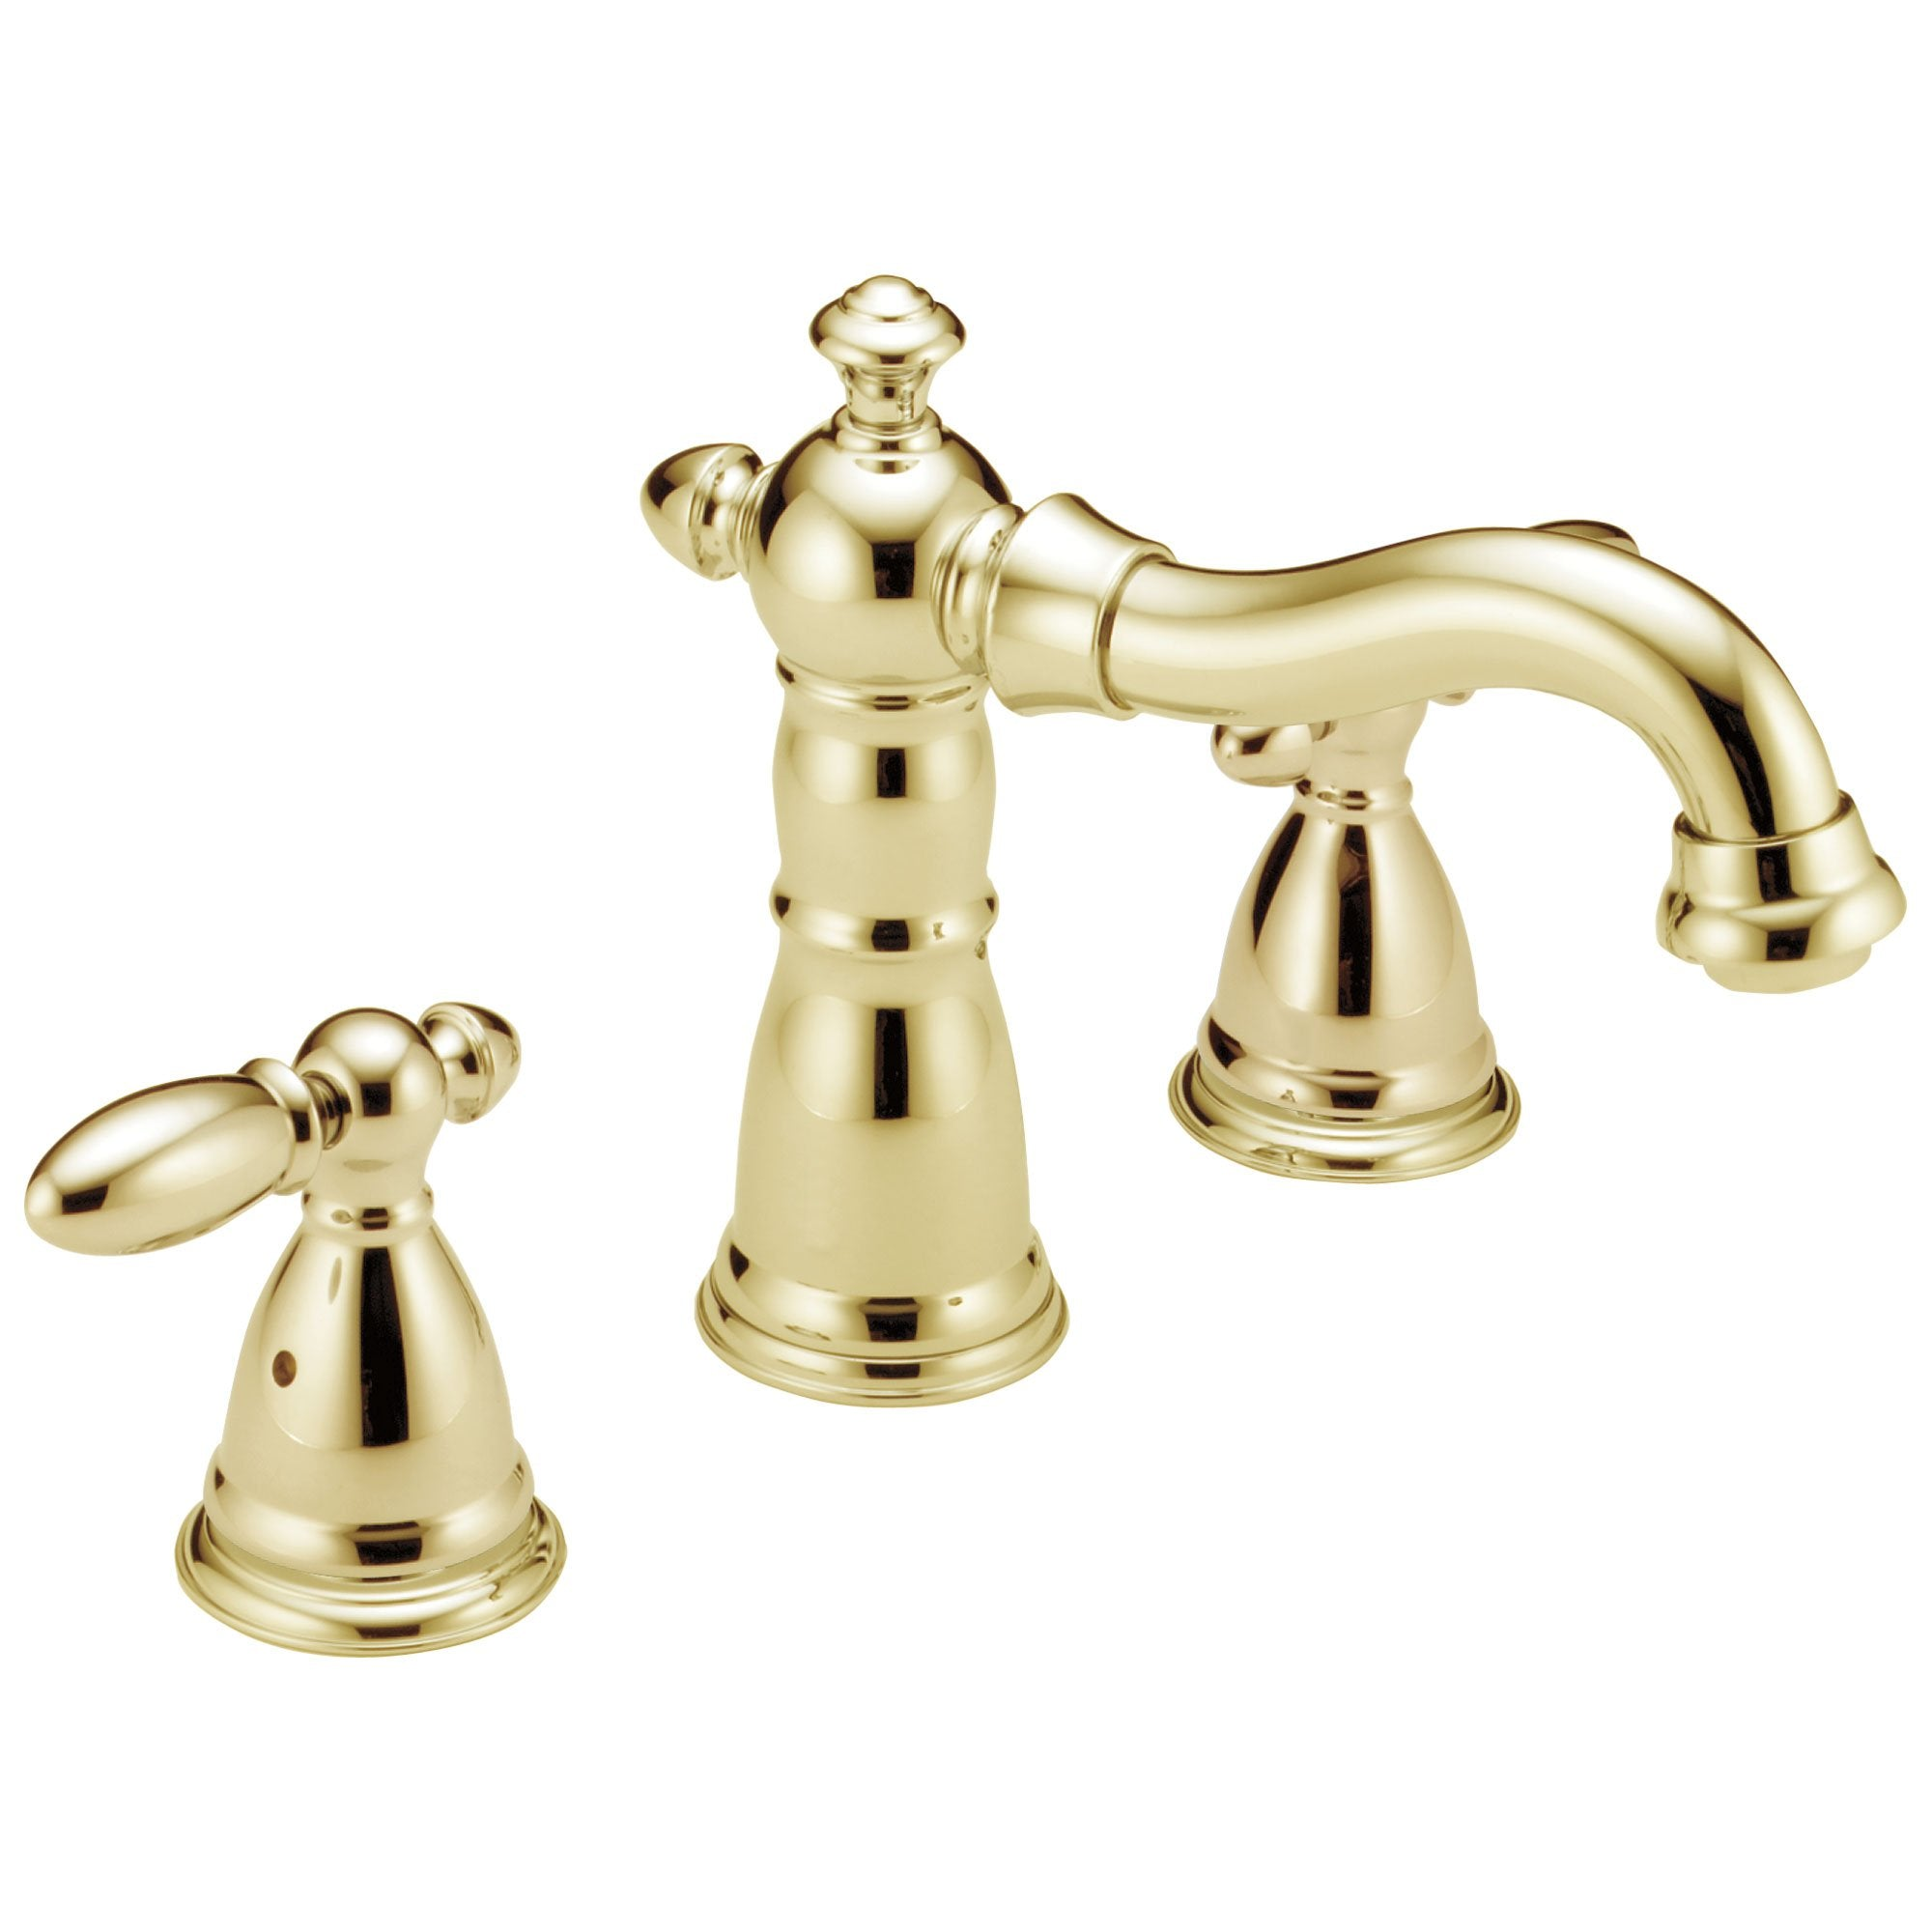 Delta Victorian Collection Polished Brass Finish Traditional Roman Tub Filler Faucet COMPLETE ITEM Includes (2) Lever Handles and Rough-in Valve D1459V